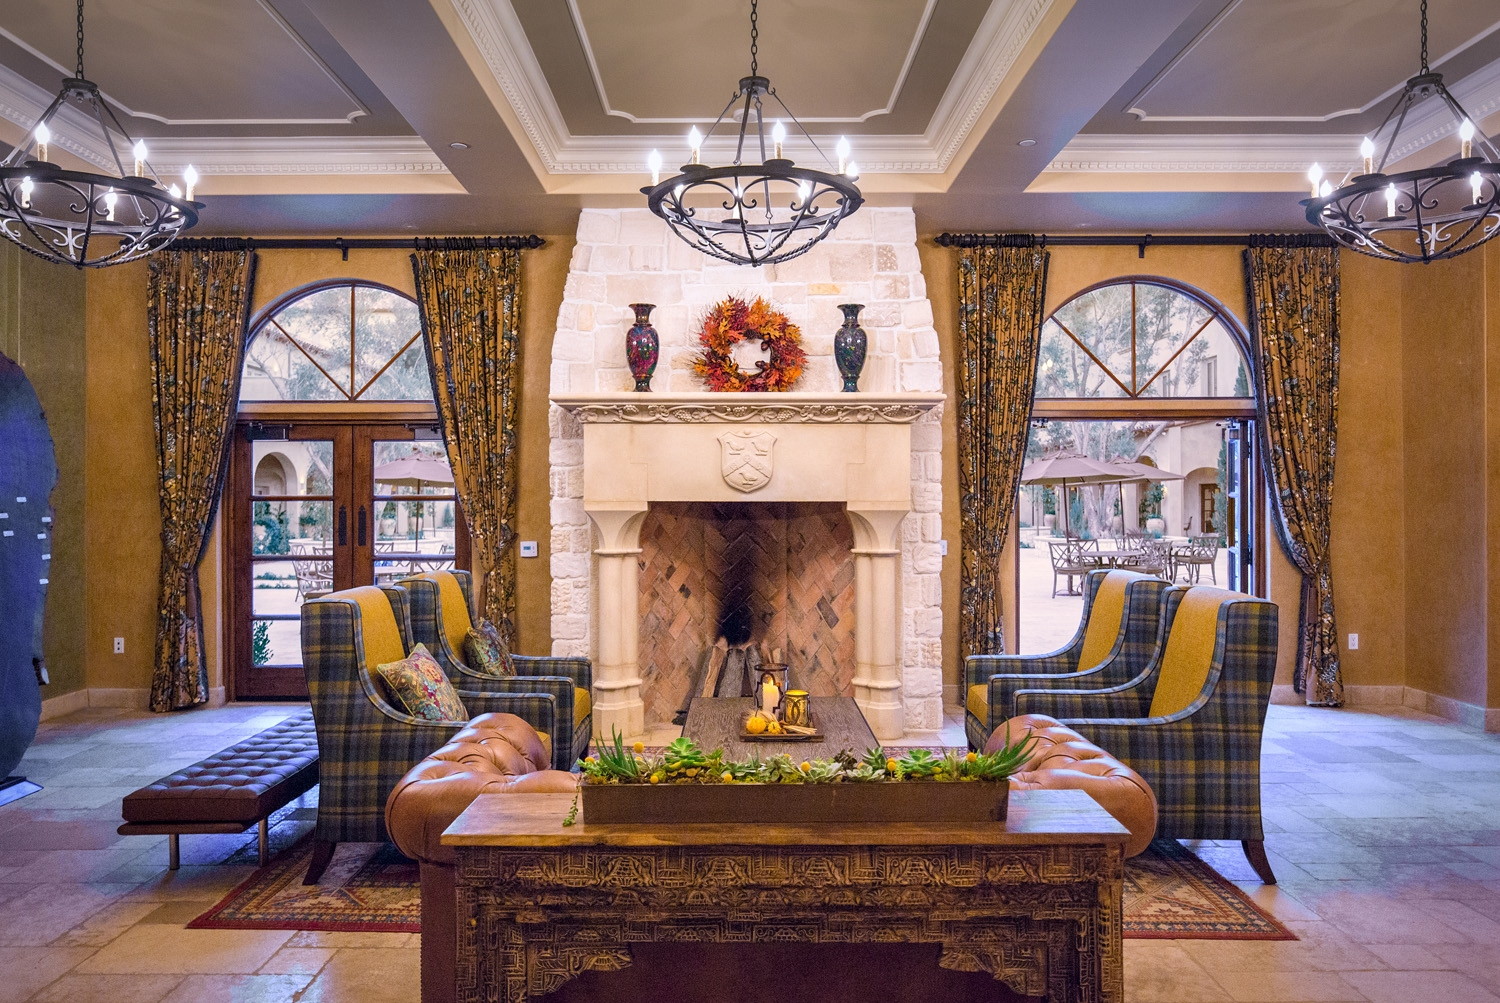 The interior of the Allegretto Vineyard Resort living room style